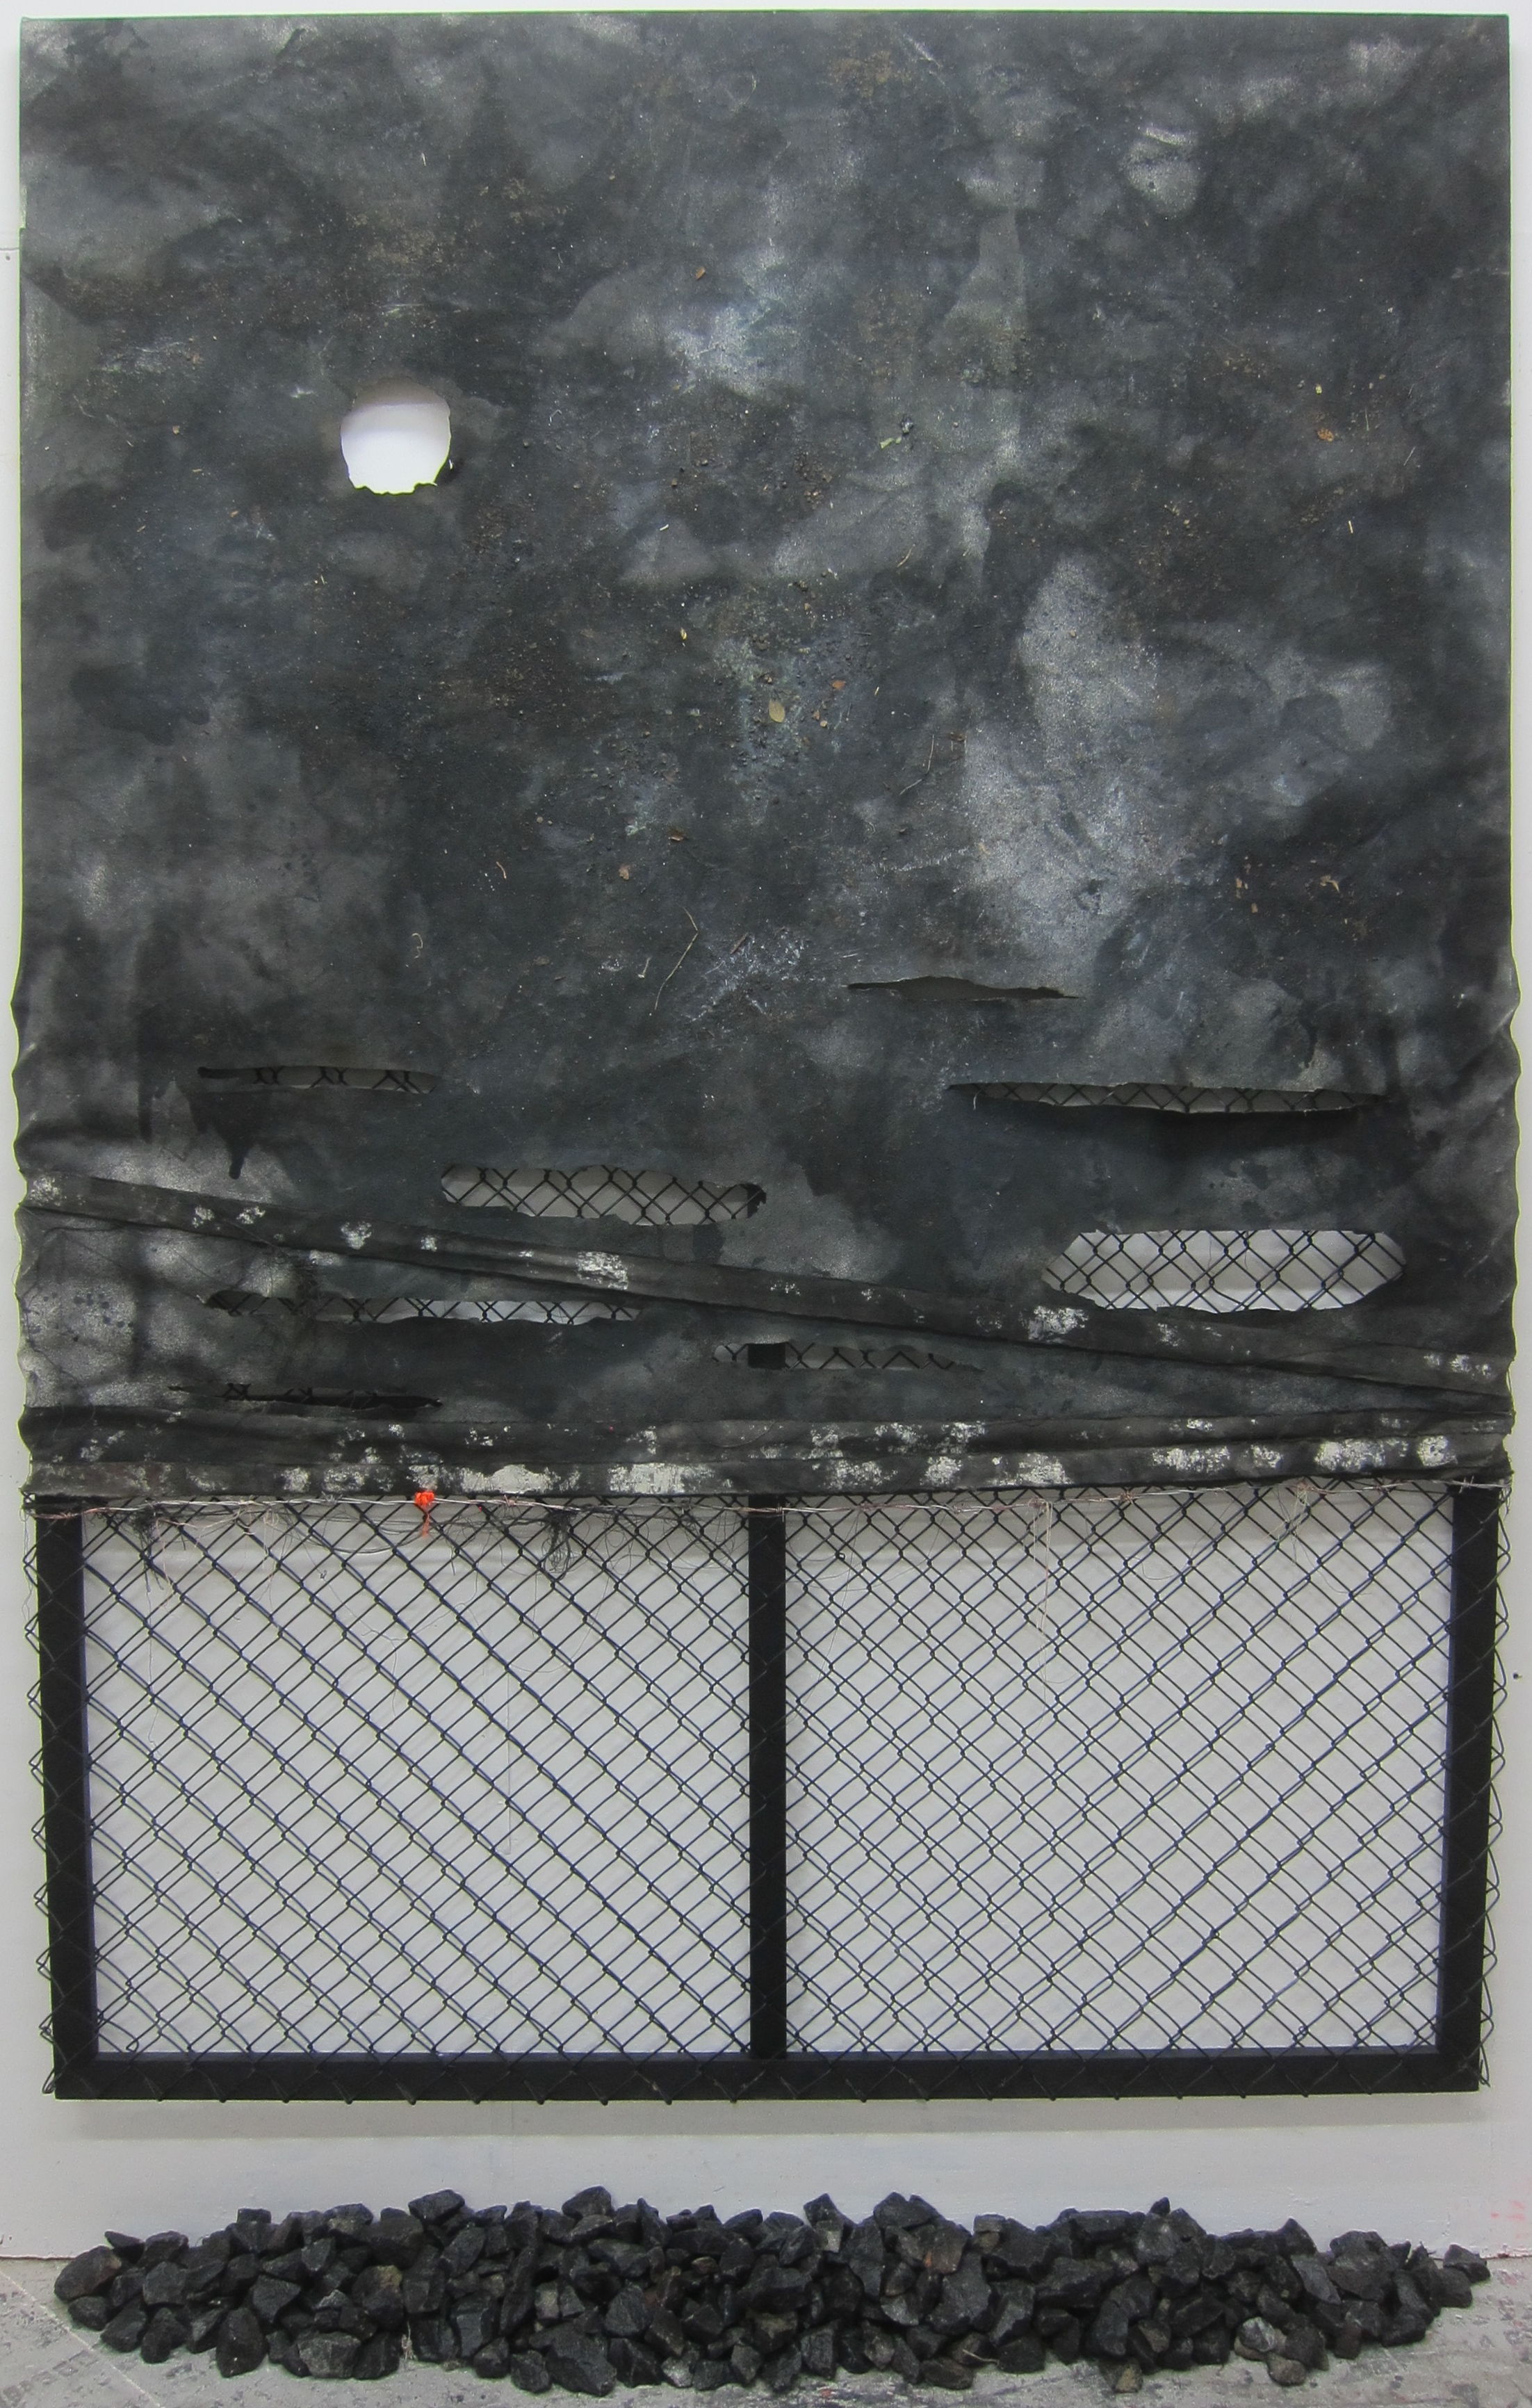 Trespass.   Alkyd resin, ink, soil, barbed wire, polyester, fence, granite, wood, cotton & fire.   260 x 172 cm.  2015.